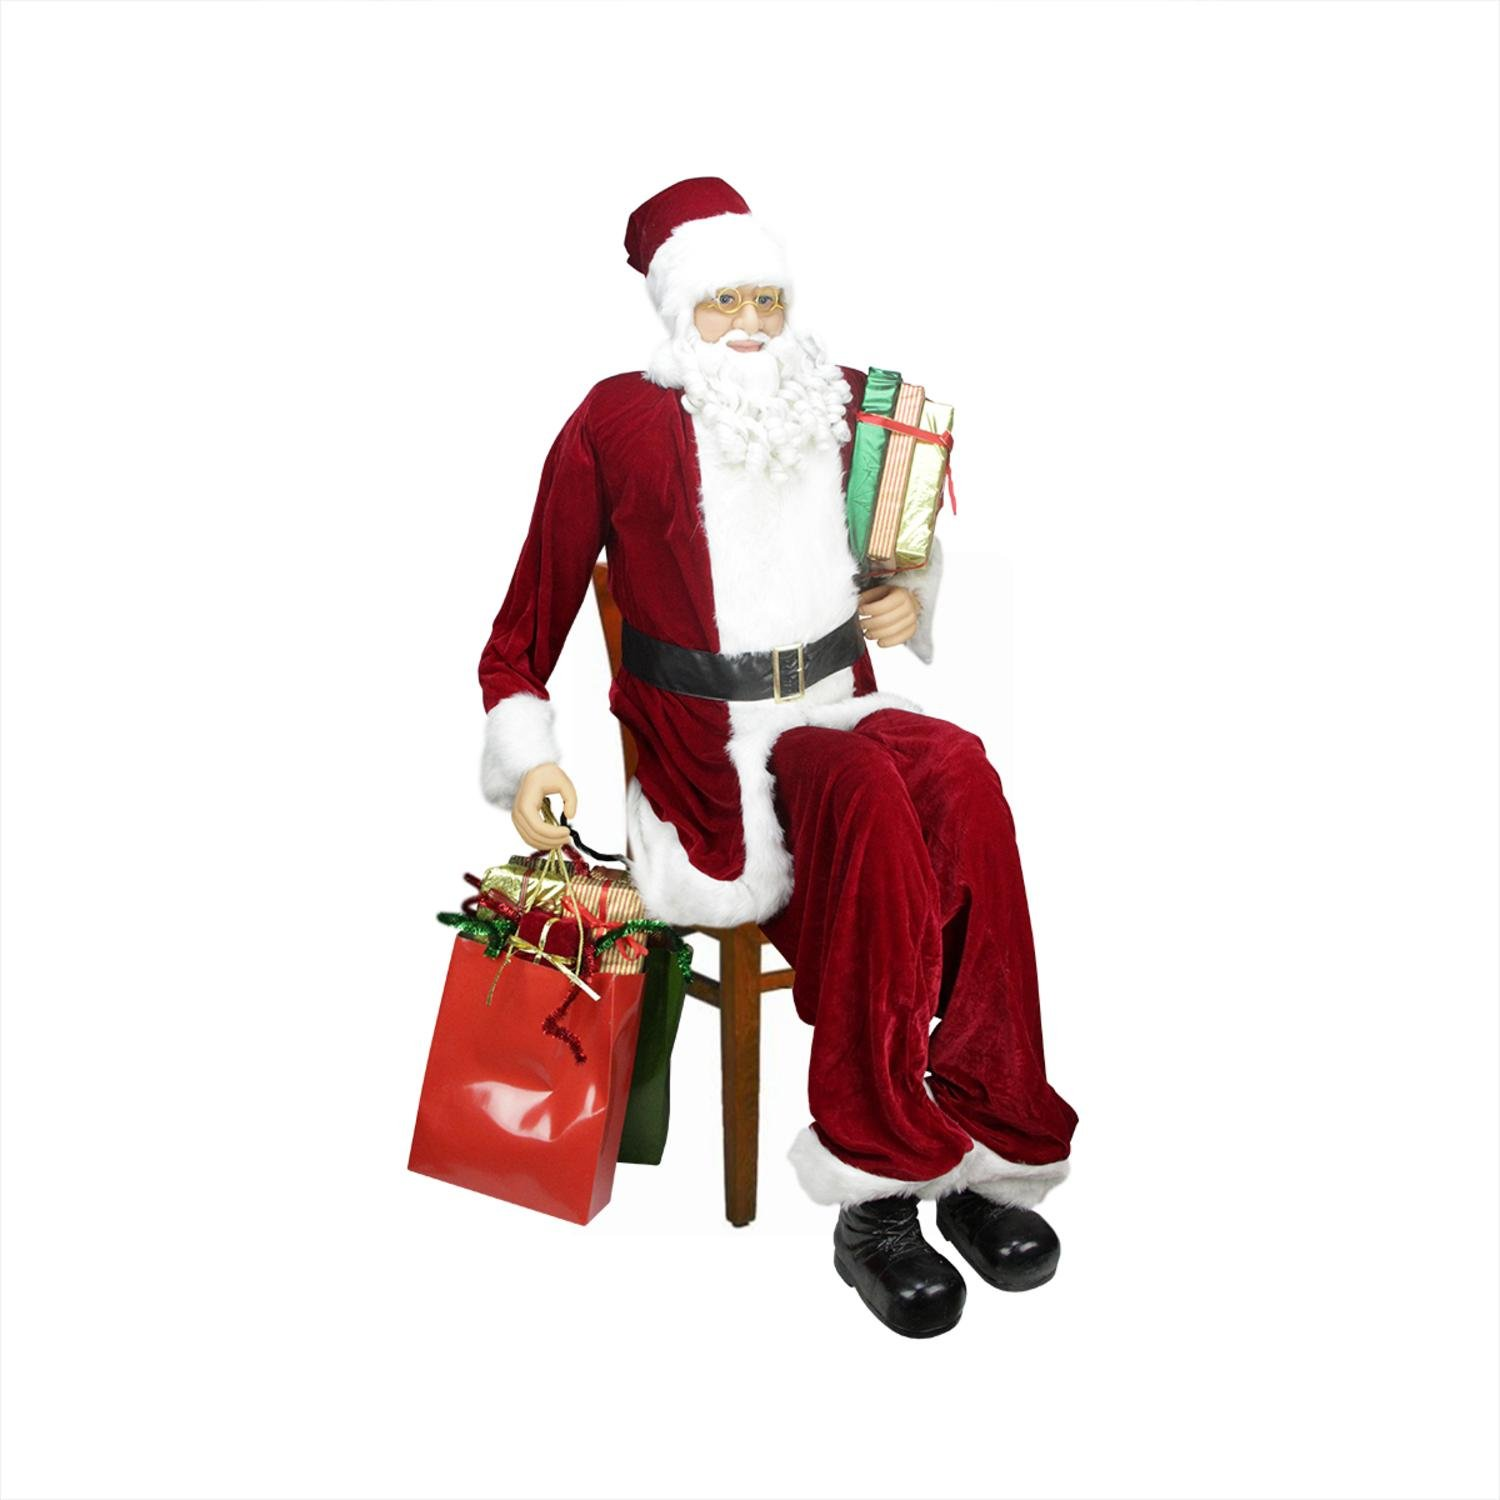 Northlight 31451214 Huge Life-Size Decorative Plush Christmas Santa Claus Figure (Sitting or Standing) with Presents, 6'